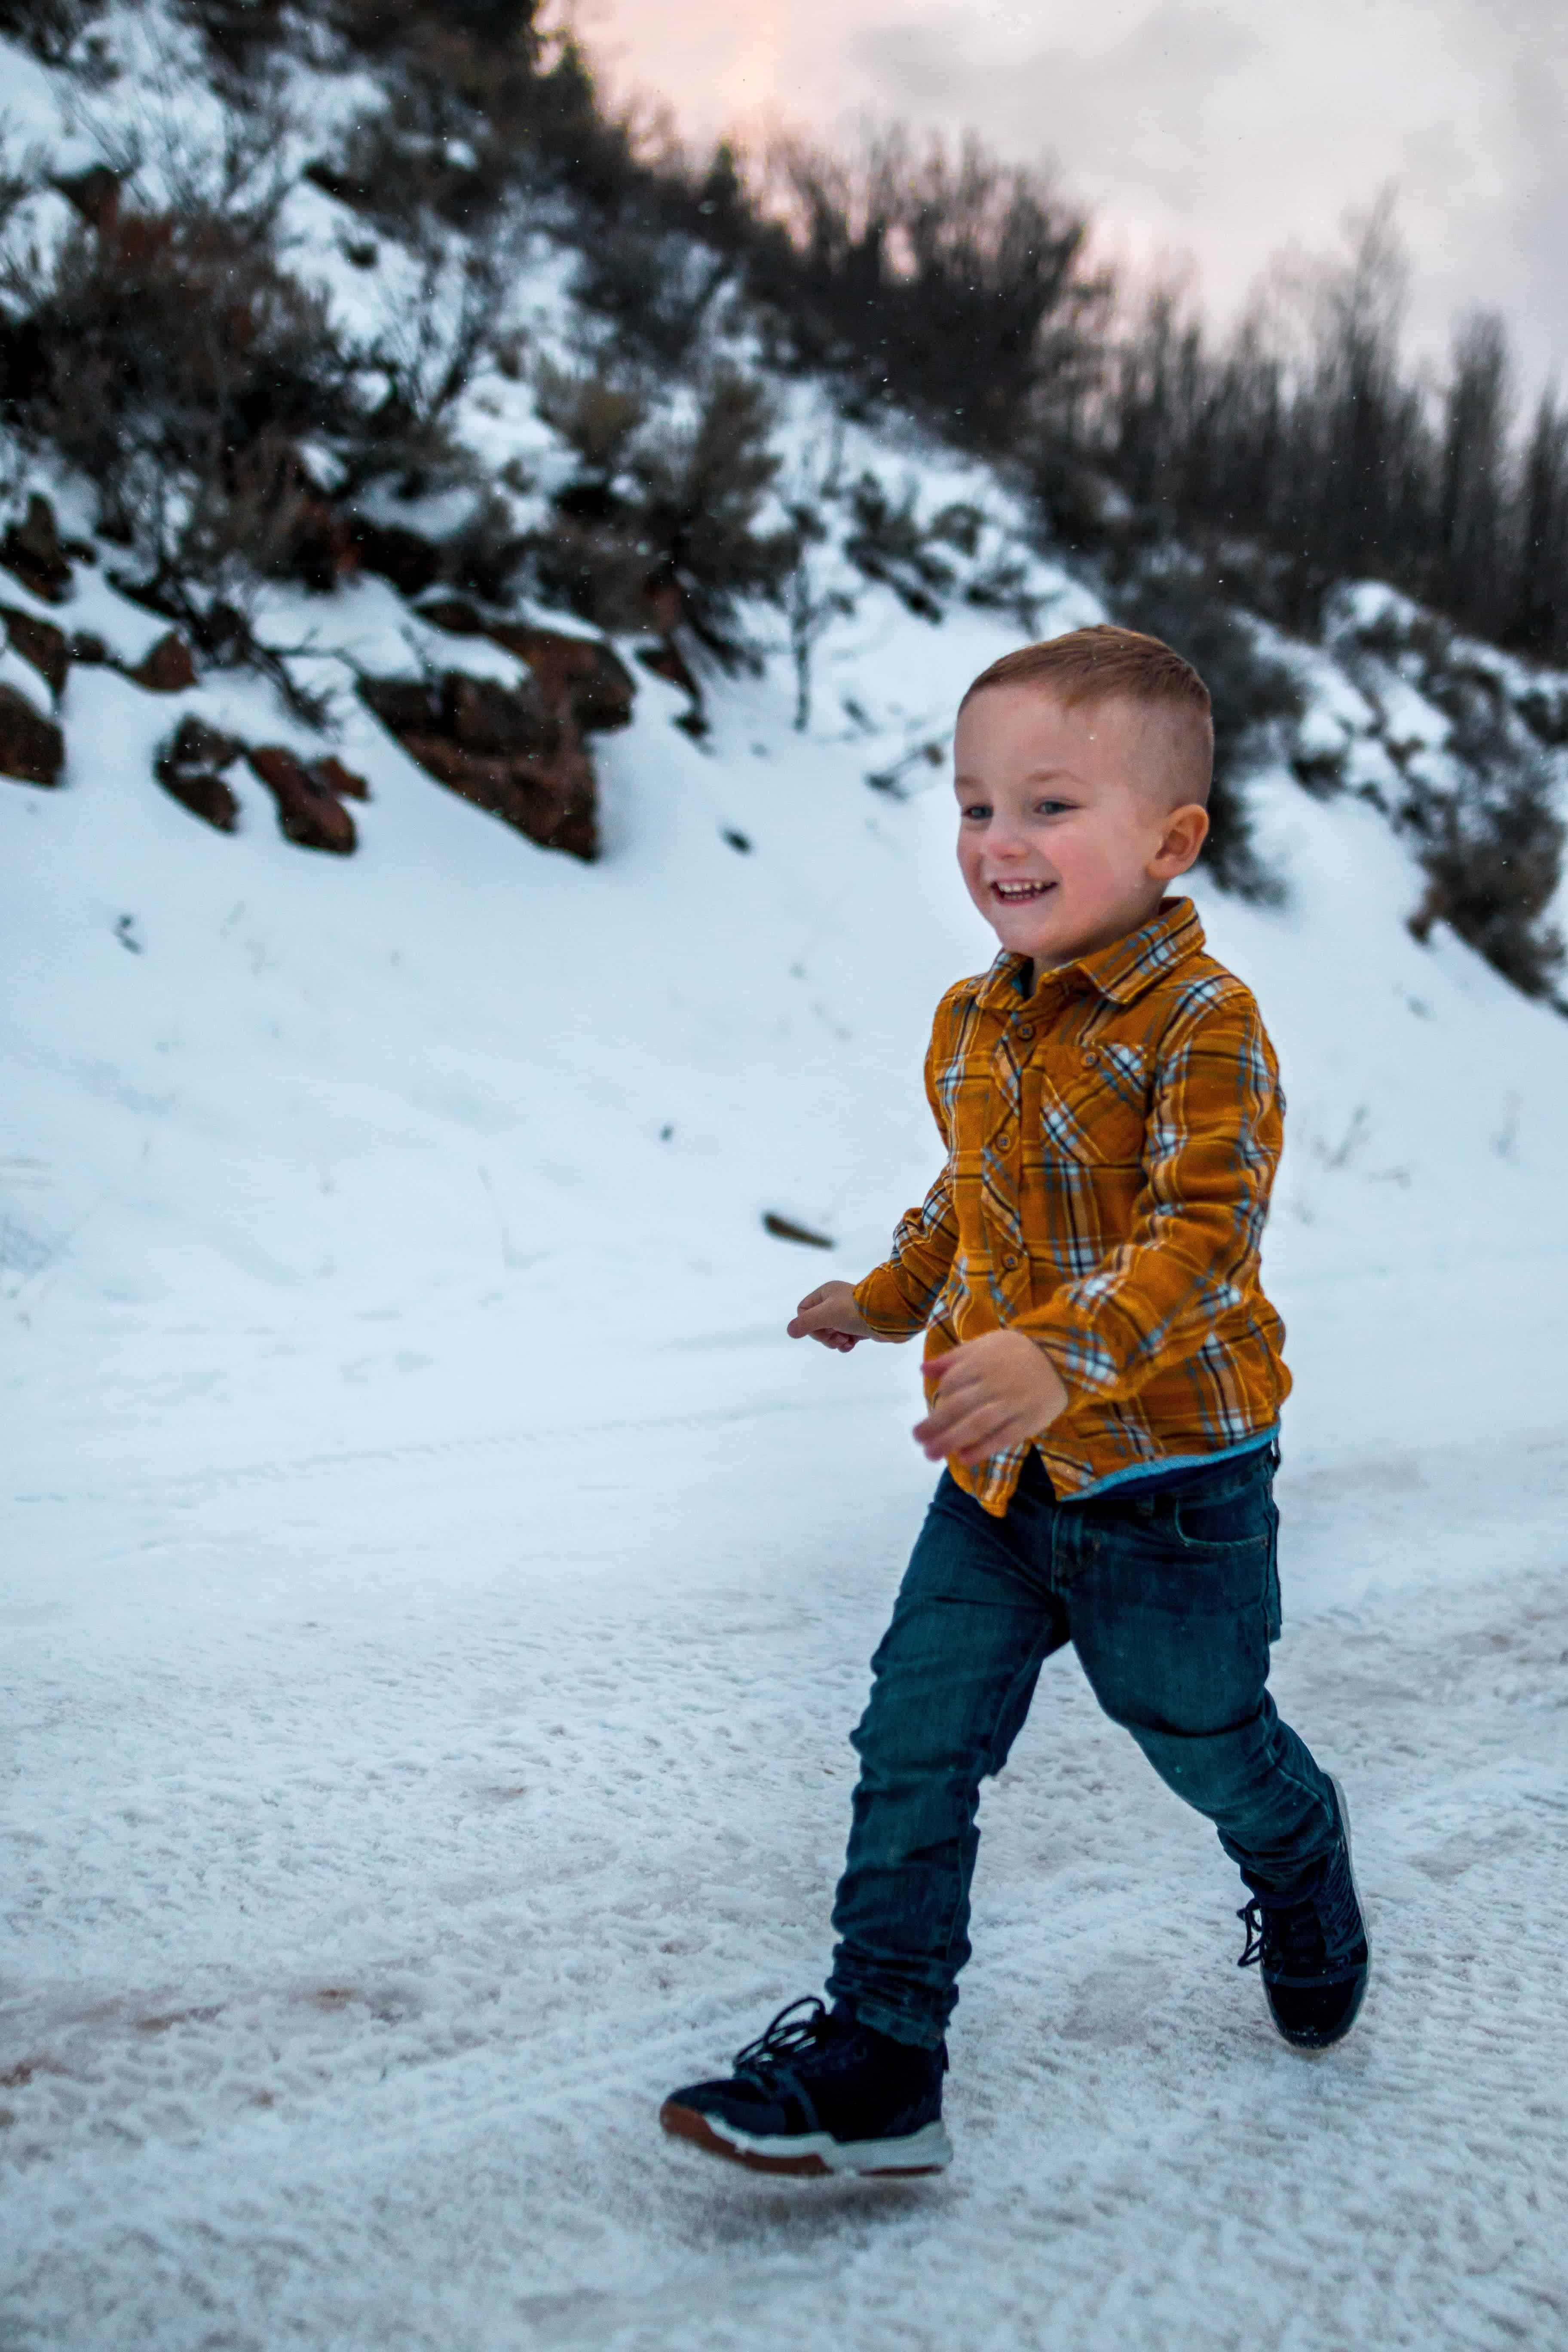 Fun Activities to Get Your Family Outdoors this Winter